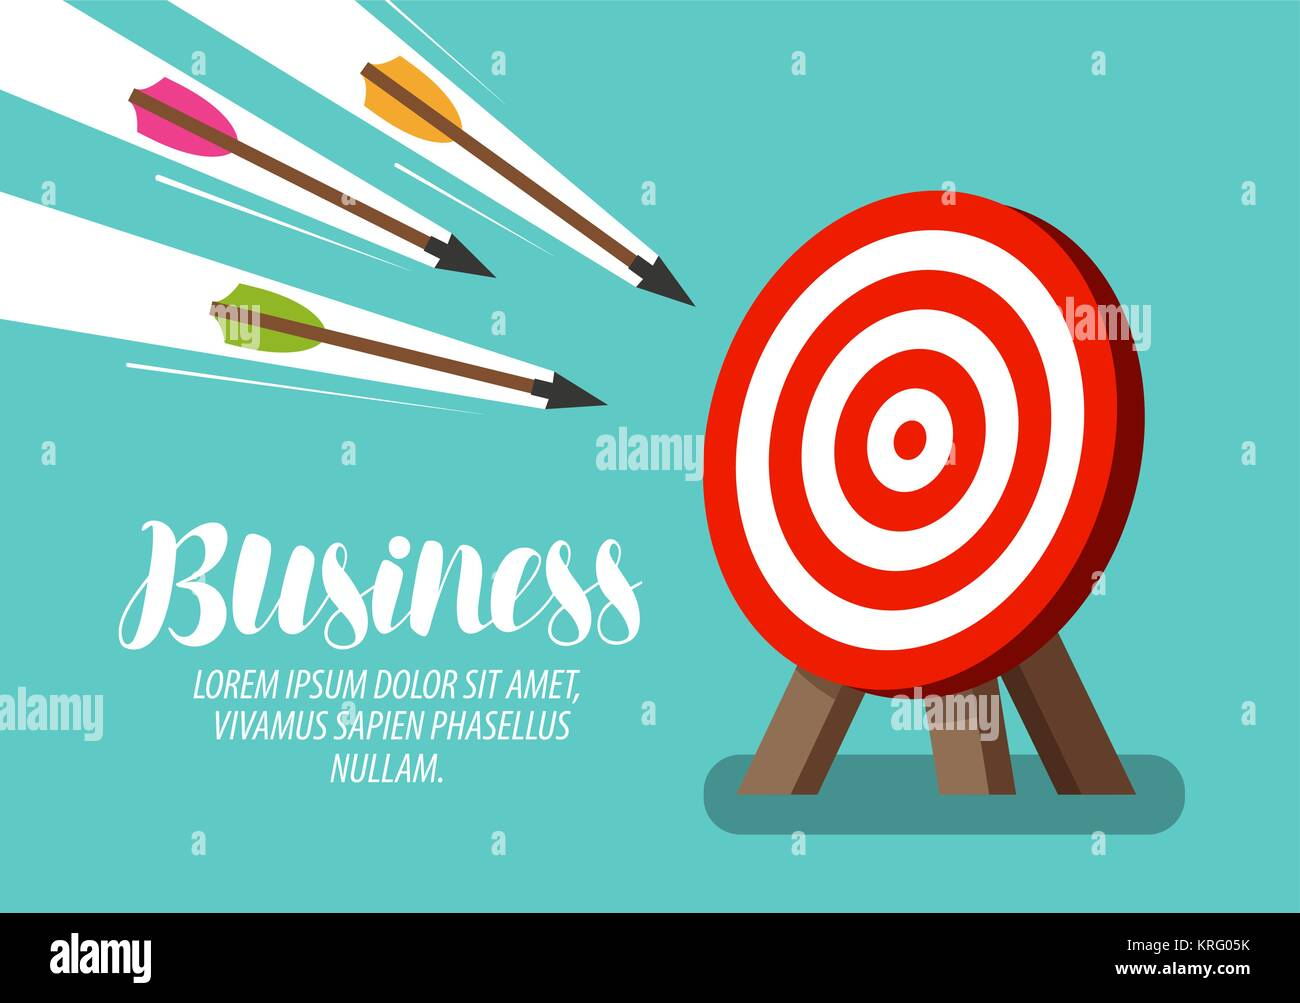 Target and flying arrows. Business concept. Vector illustration - Stock Image